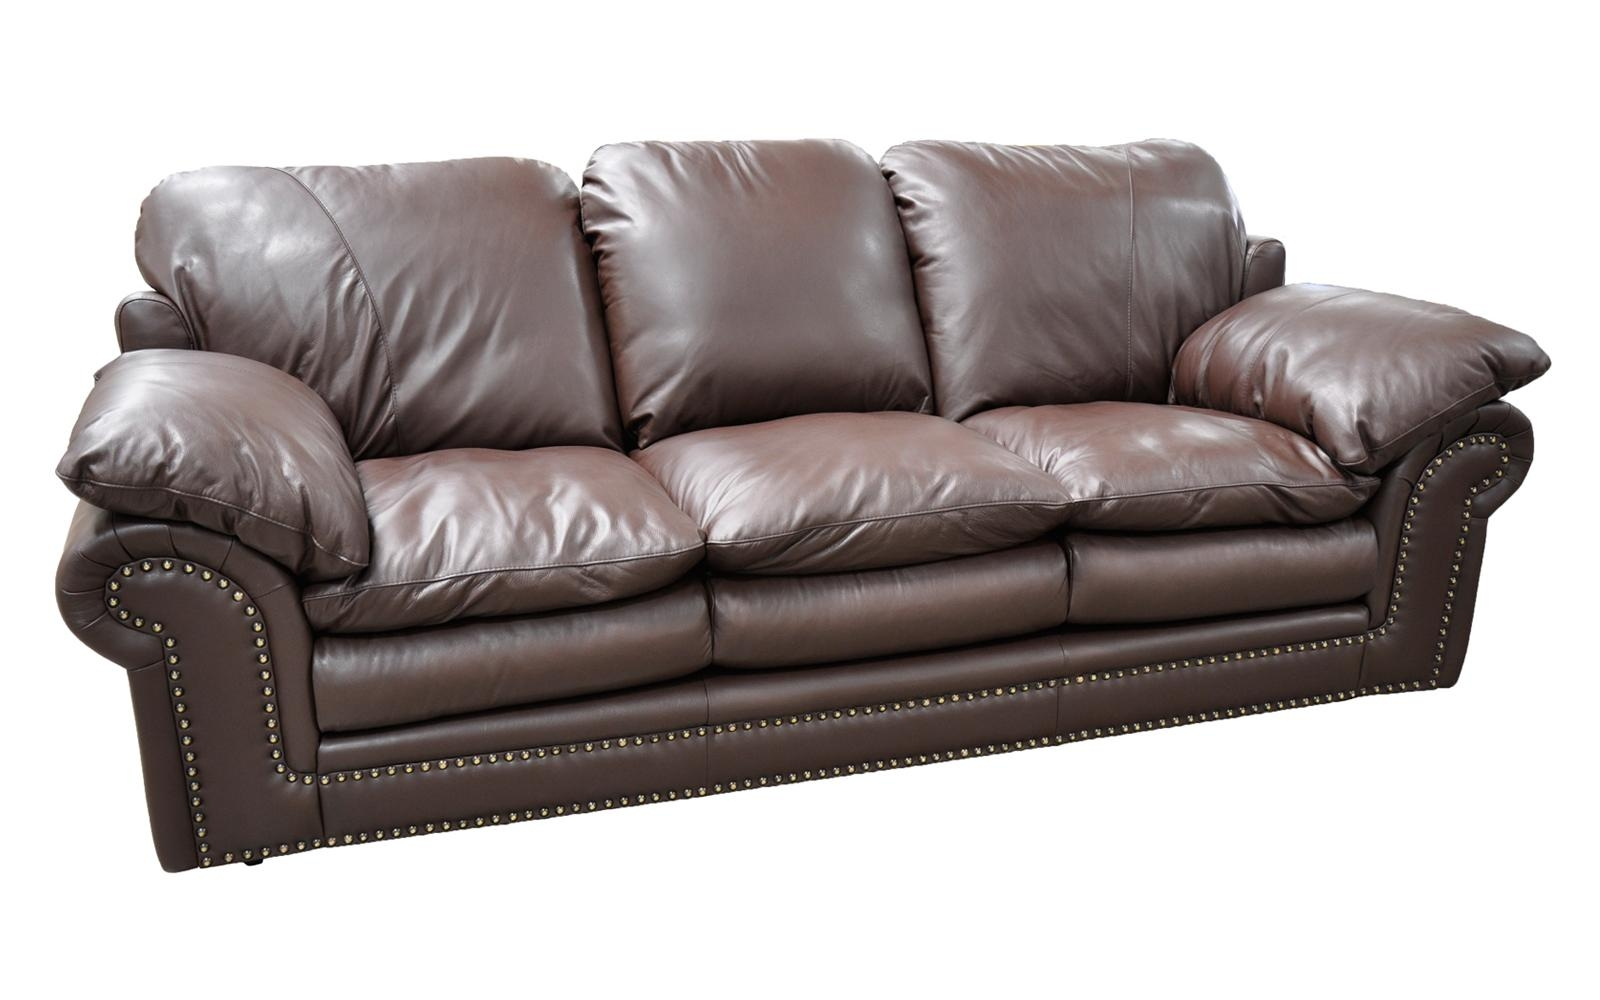 Quality Leather Sofa In Austin, Dallas, San Antonio & Houston Tx throughout Leather Sectional Austin